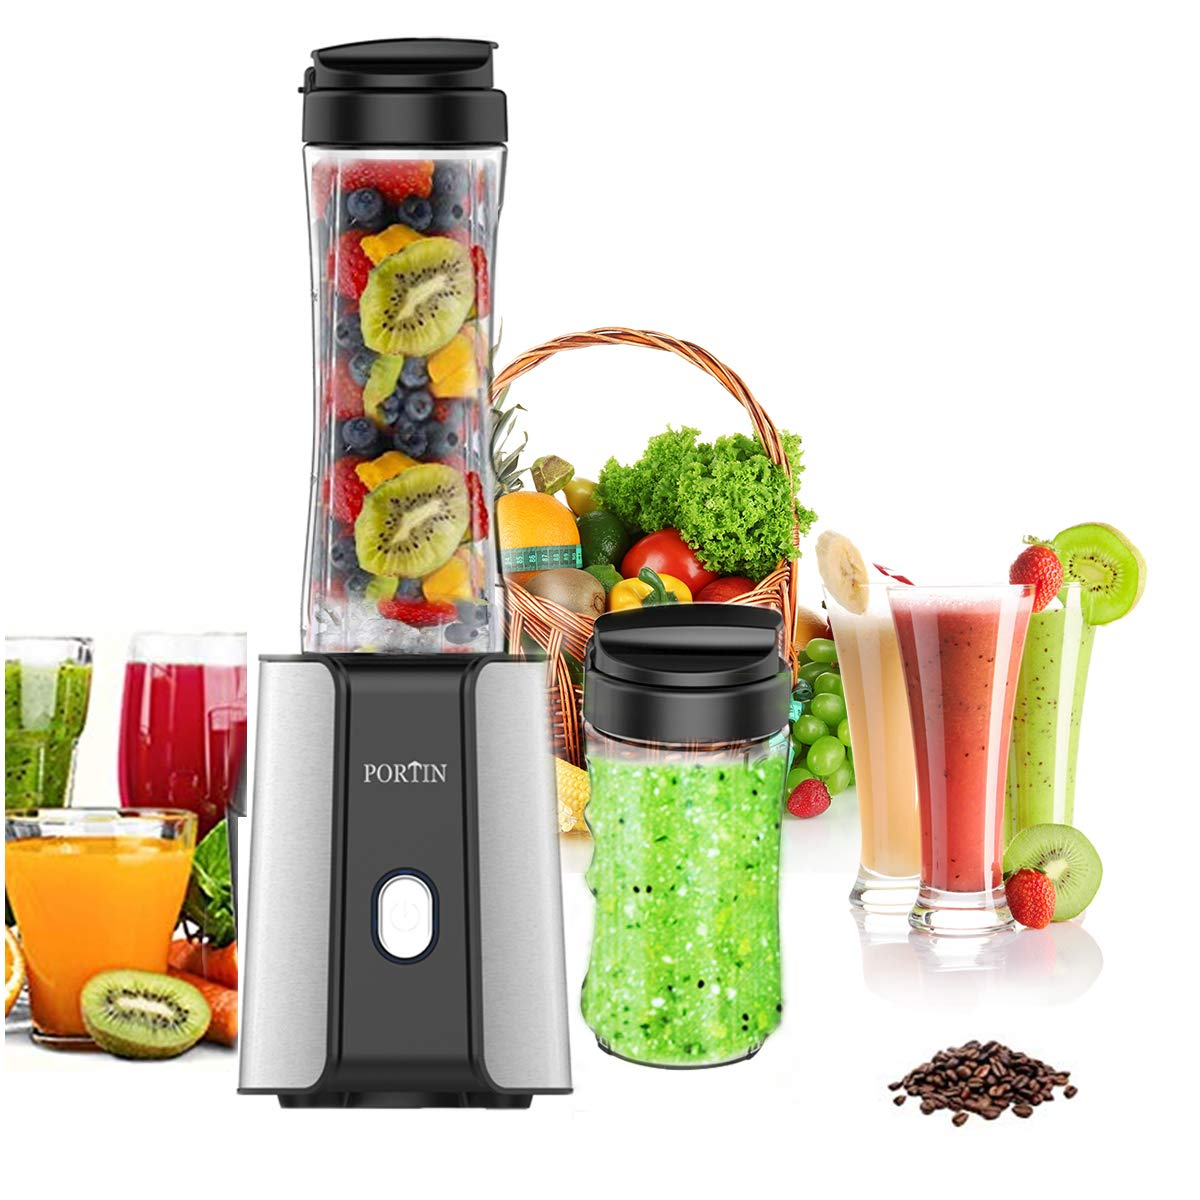 Portin travel blender personal for making smoothies juice shakes300 watt high speed smoothie maker kitchen blender with removable tritan fda bpa free